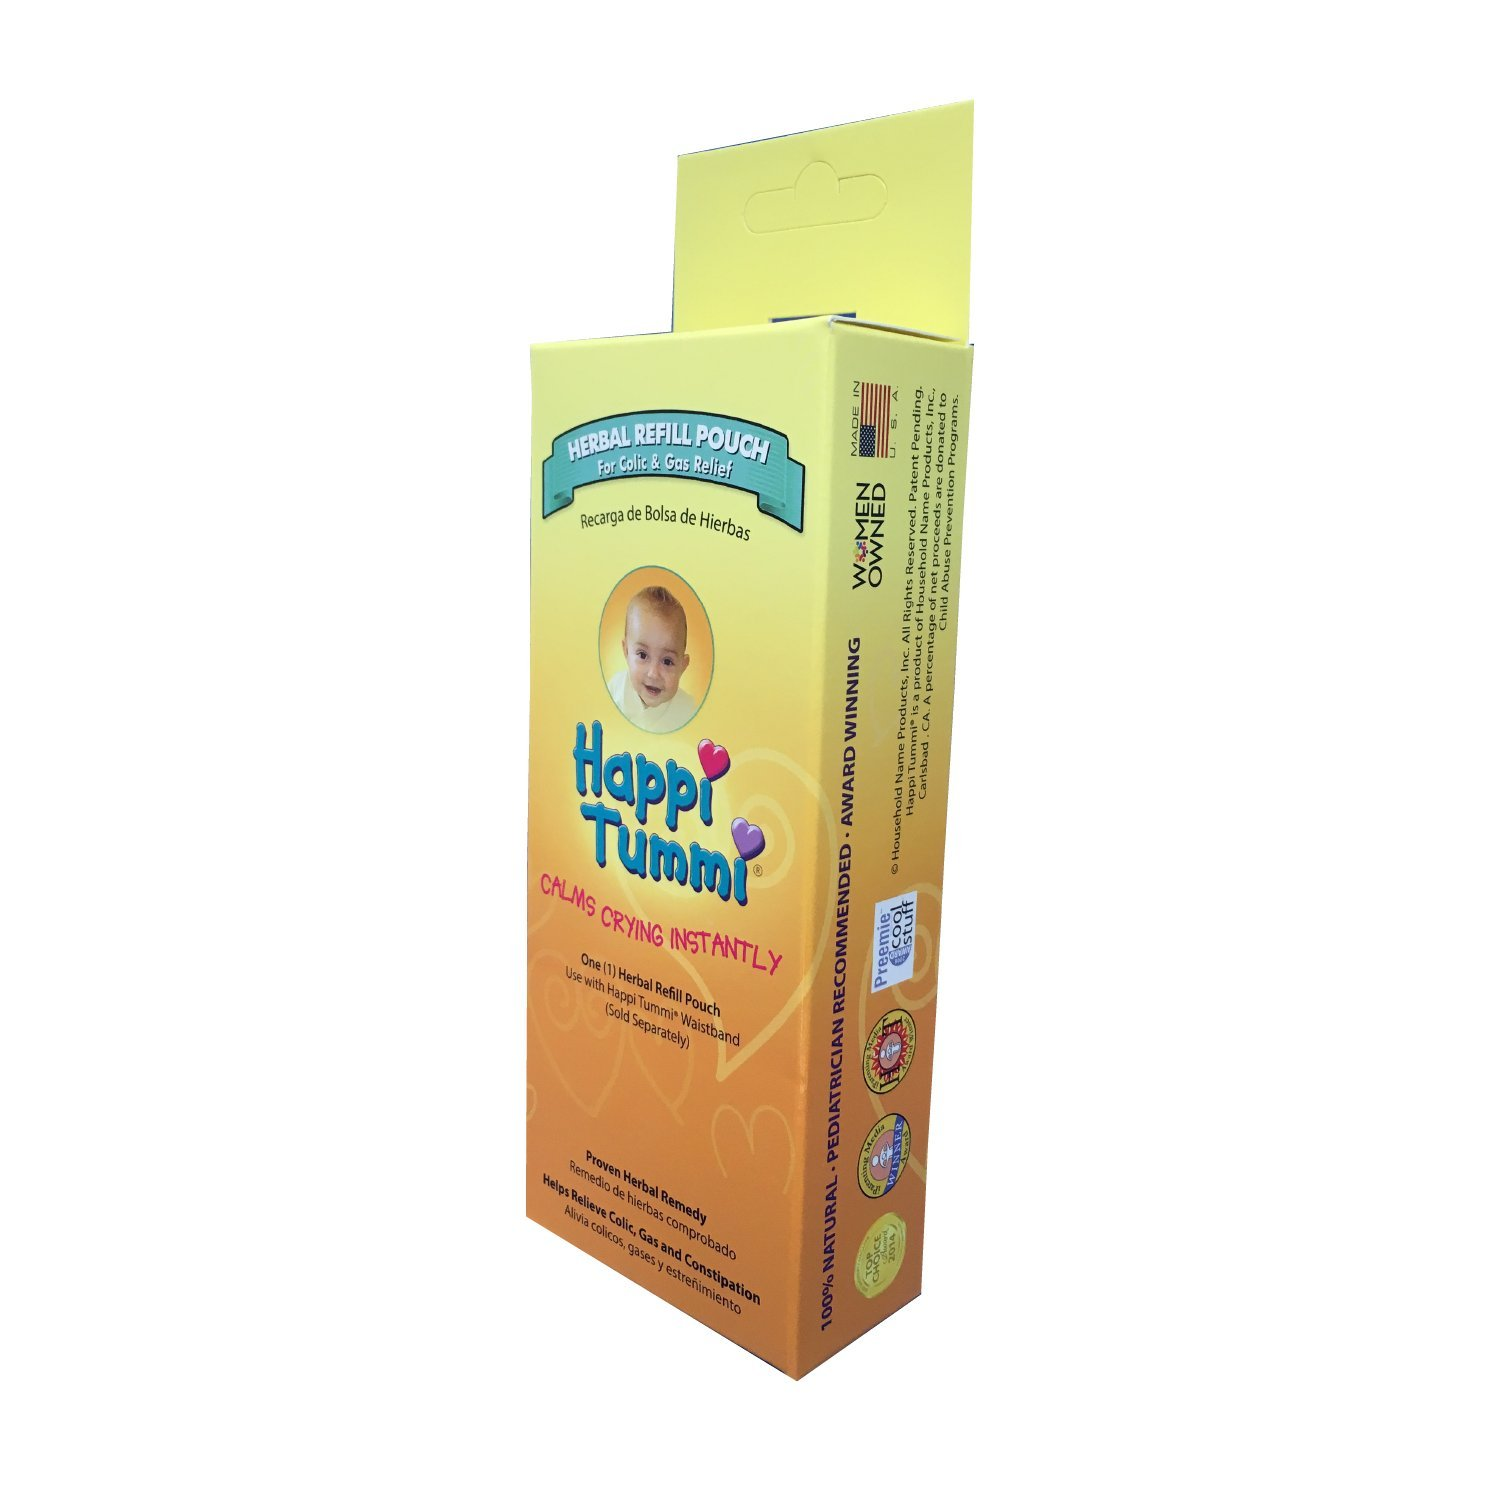 Happi Tummi Herbal Refill Pack - Relief For Infants and Babies with Colic, Gas, and Upset Tummies (1 Pack) by Happi Tummi (Image #2)